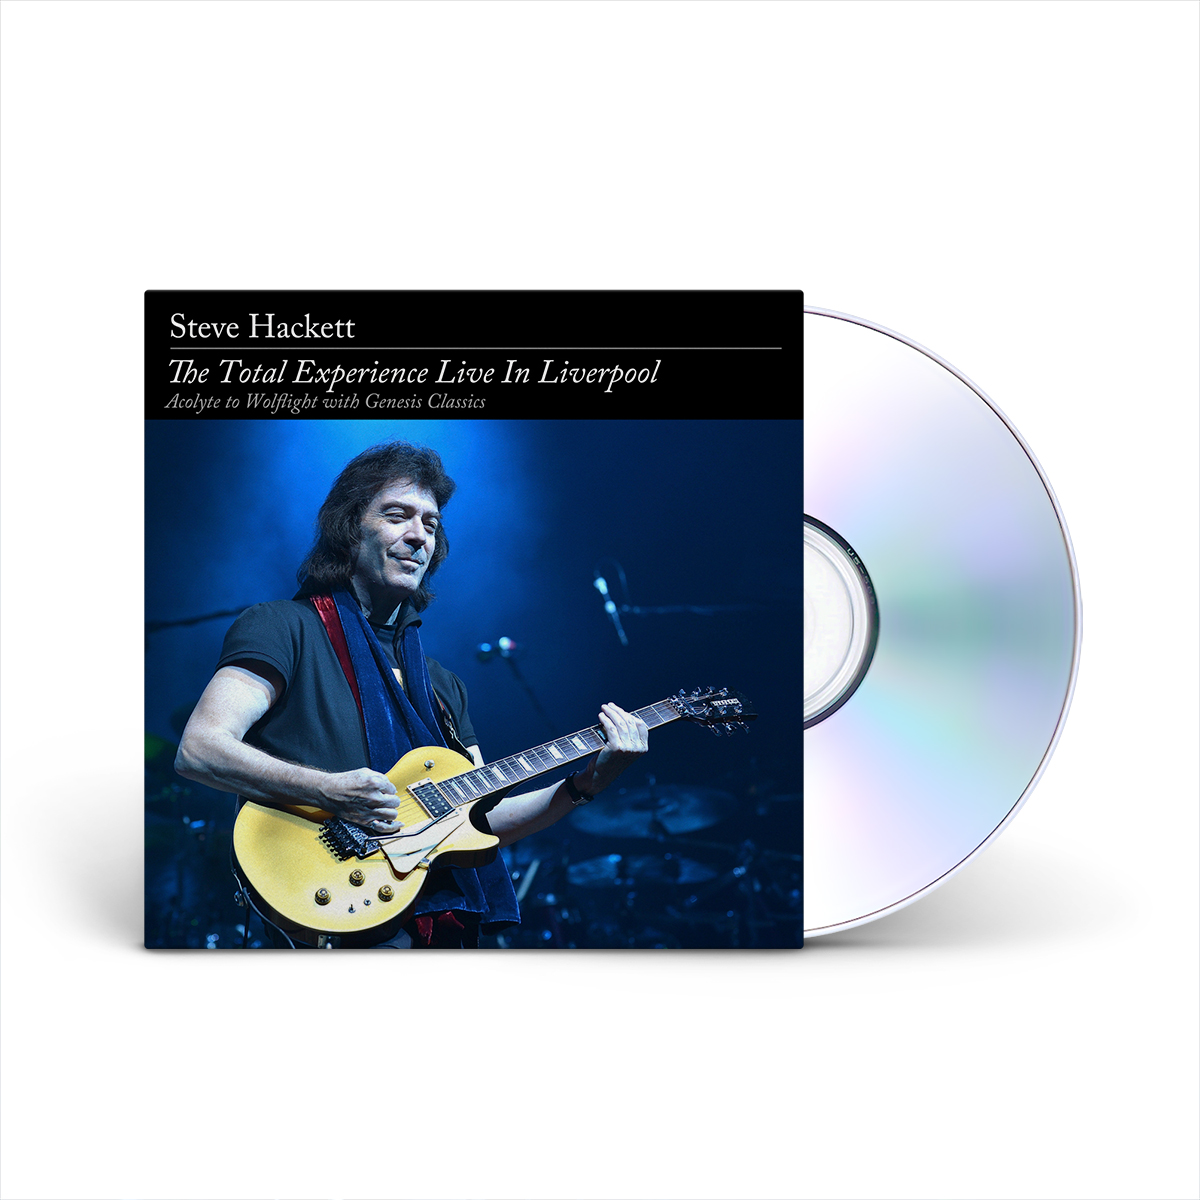 Steve Hackett - The Total Experience Live In Liverpool 2 CD + 2 DVD Set